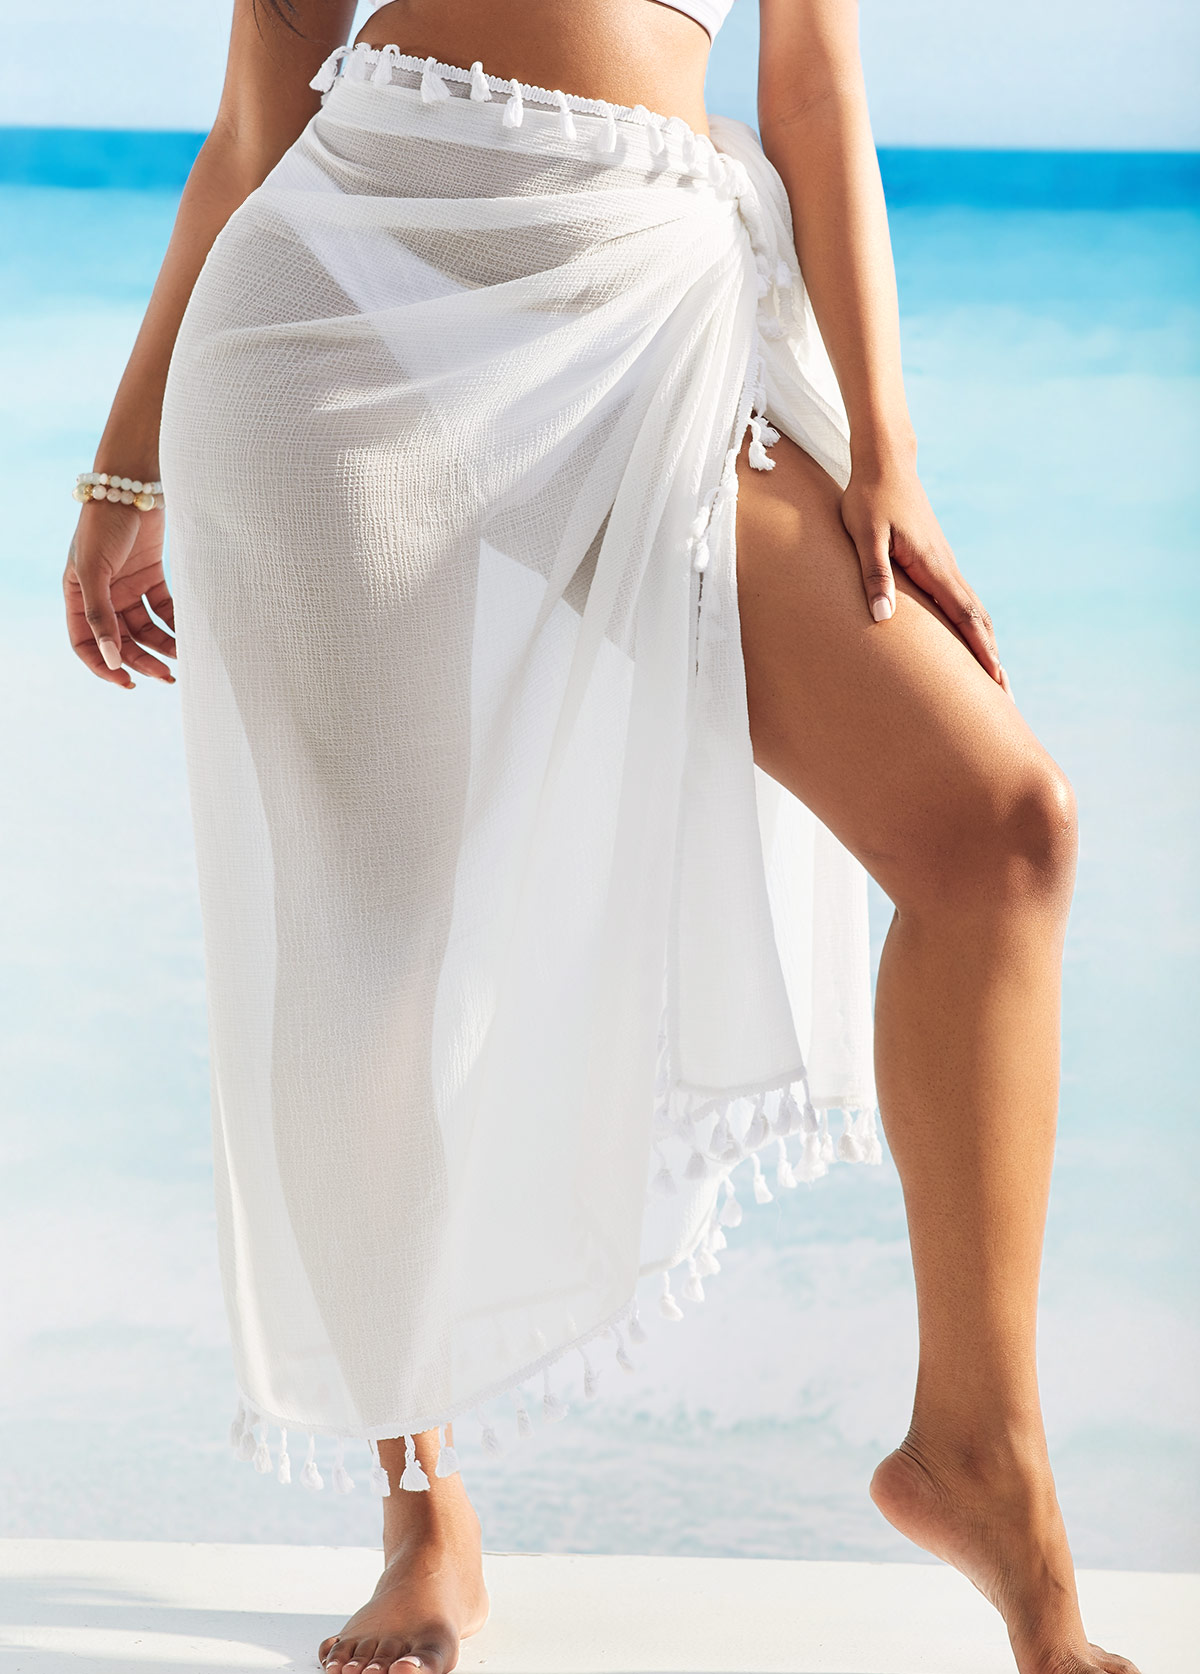 Multi Wear Tassel Detail White Cover Up